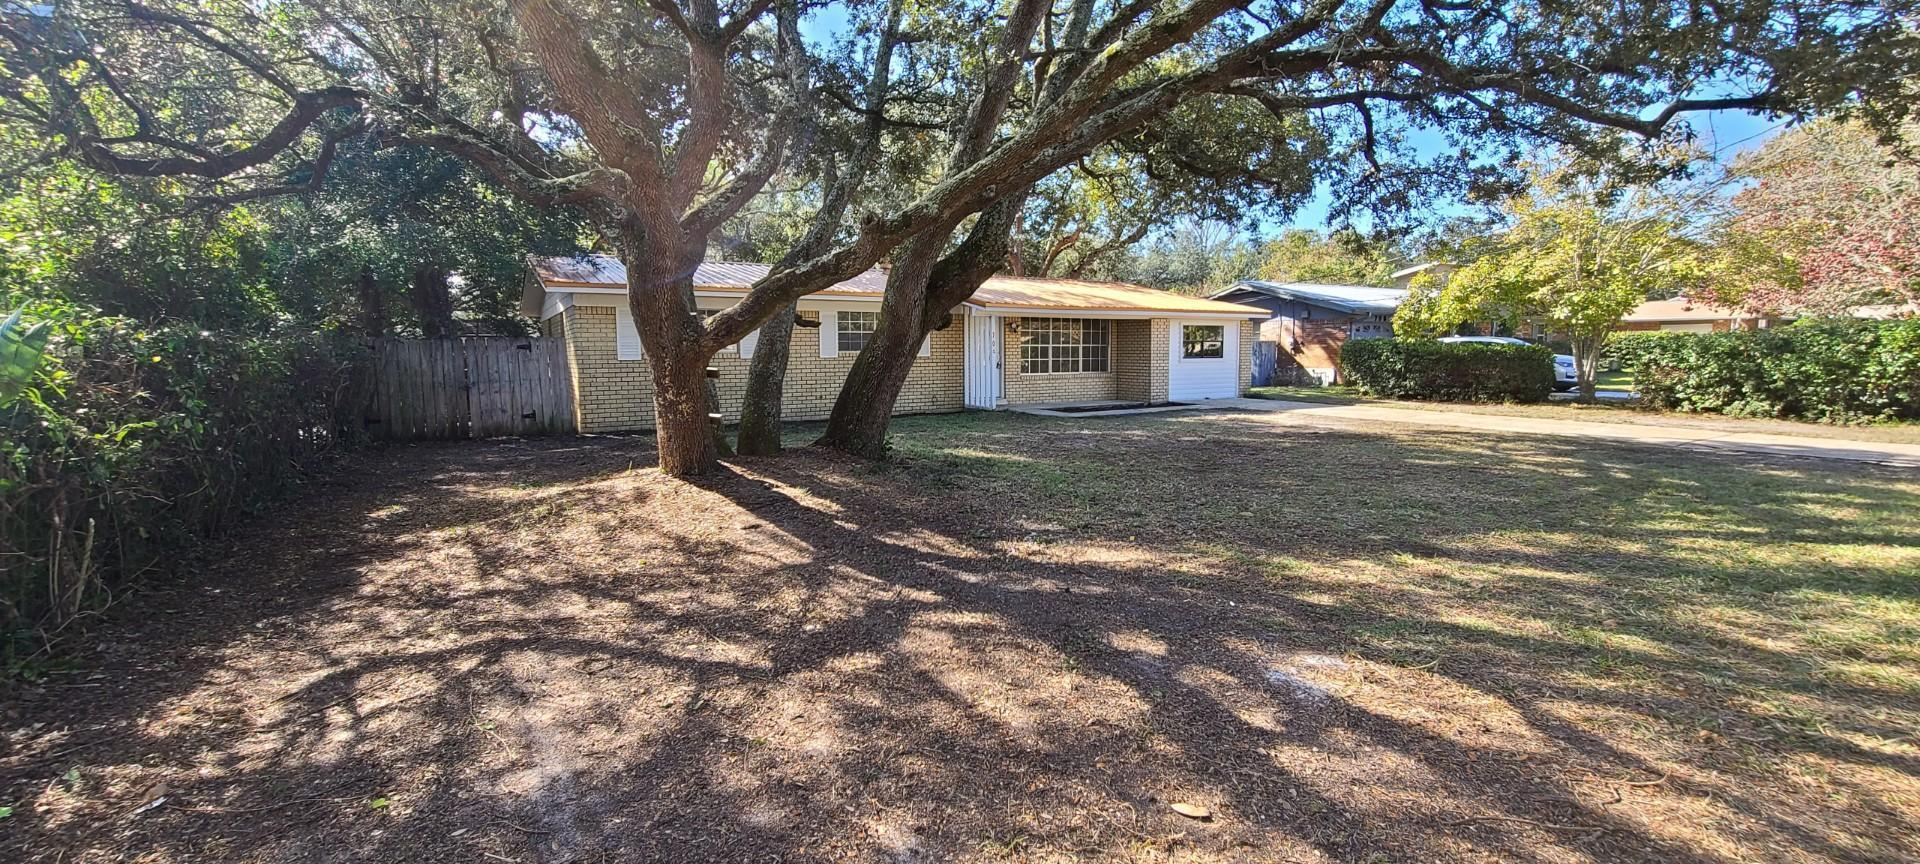 Photo of home for sale at 704 Revere, Fort Walton Beach FL